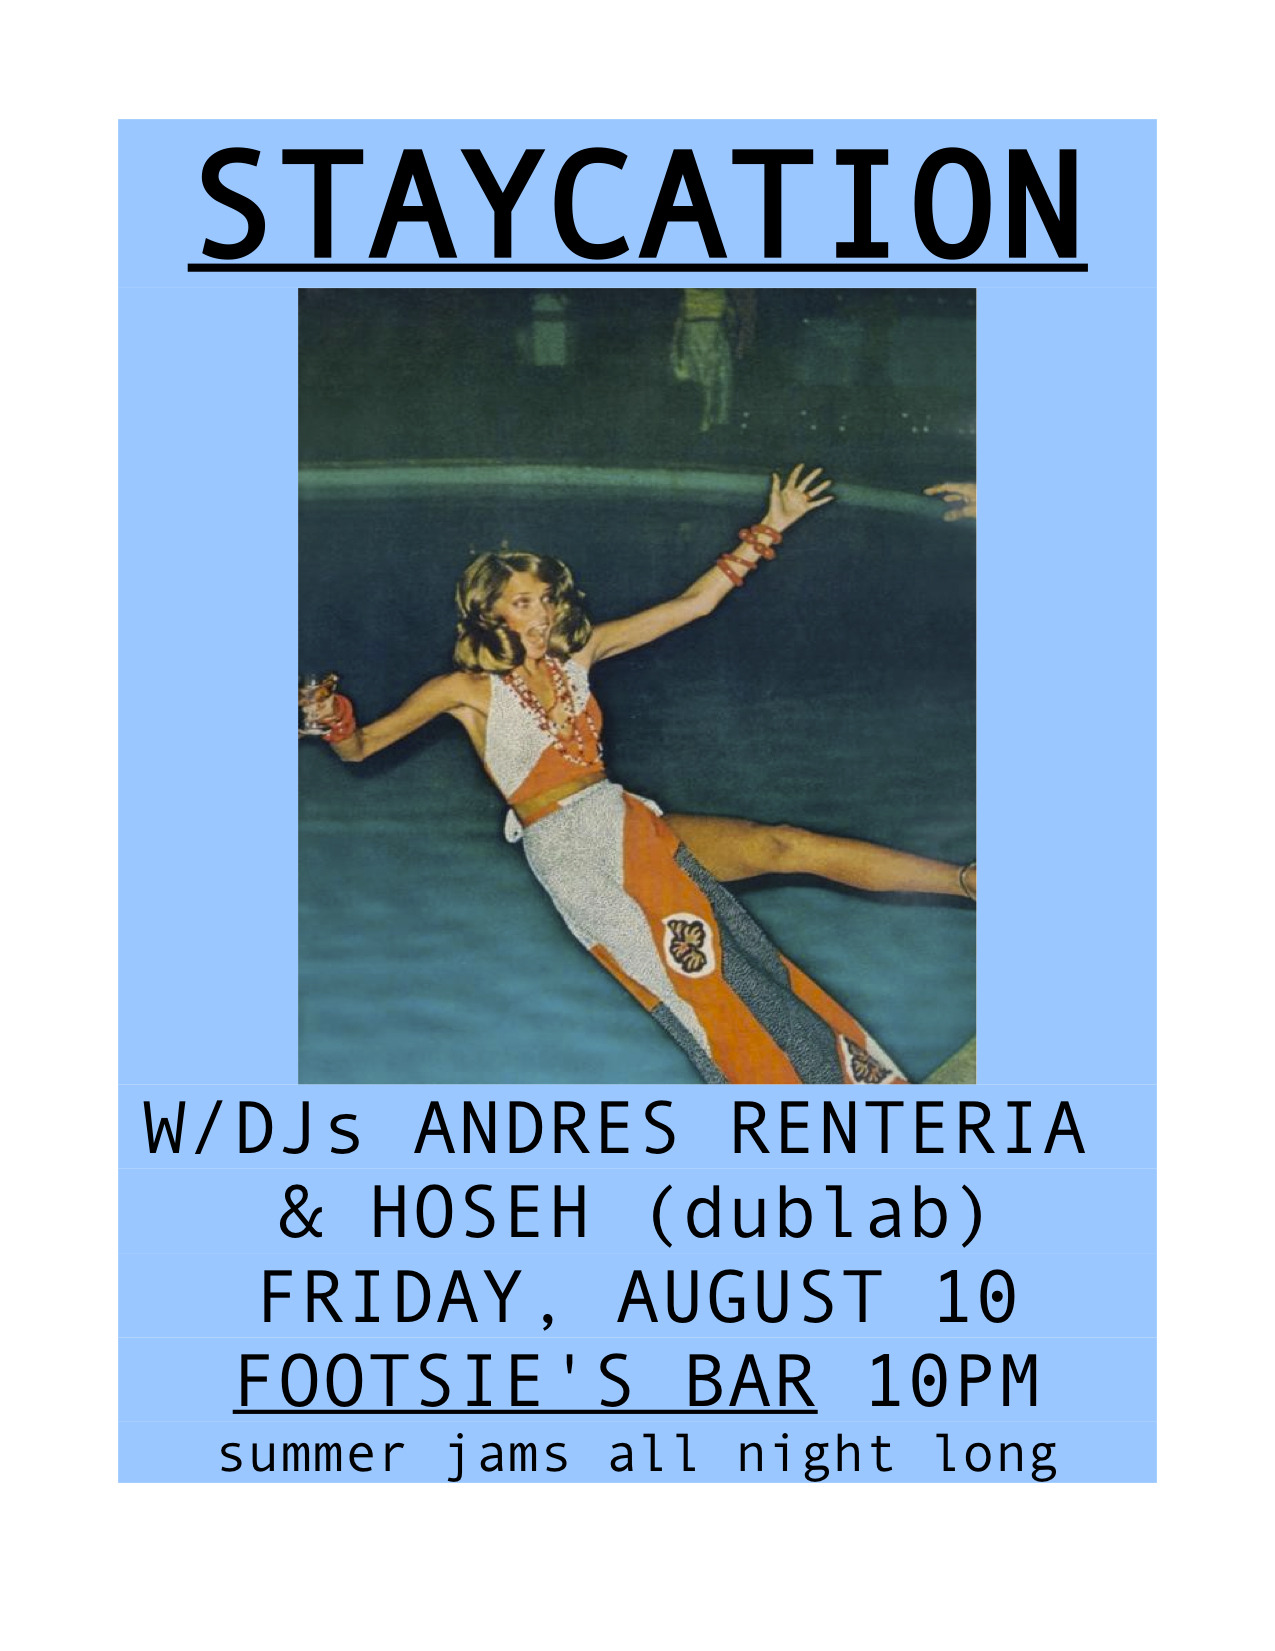 This Friday at Footsie's Bar!  STAYCATION with DJs Andres Renteria and Hoseh (dublab.com) FREE 10pm-2am!!!!!!  Hot summer jamz all night!!!